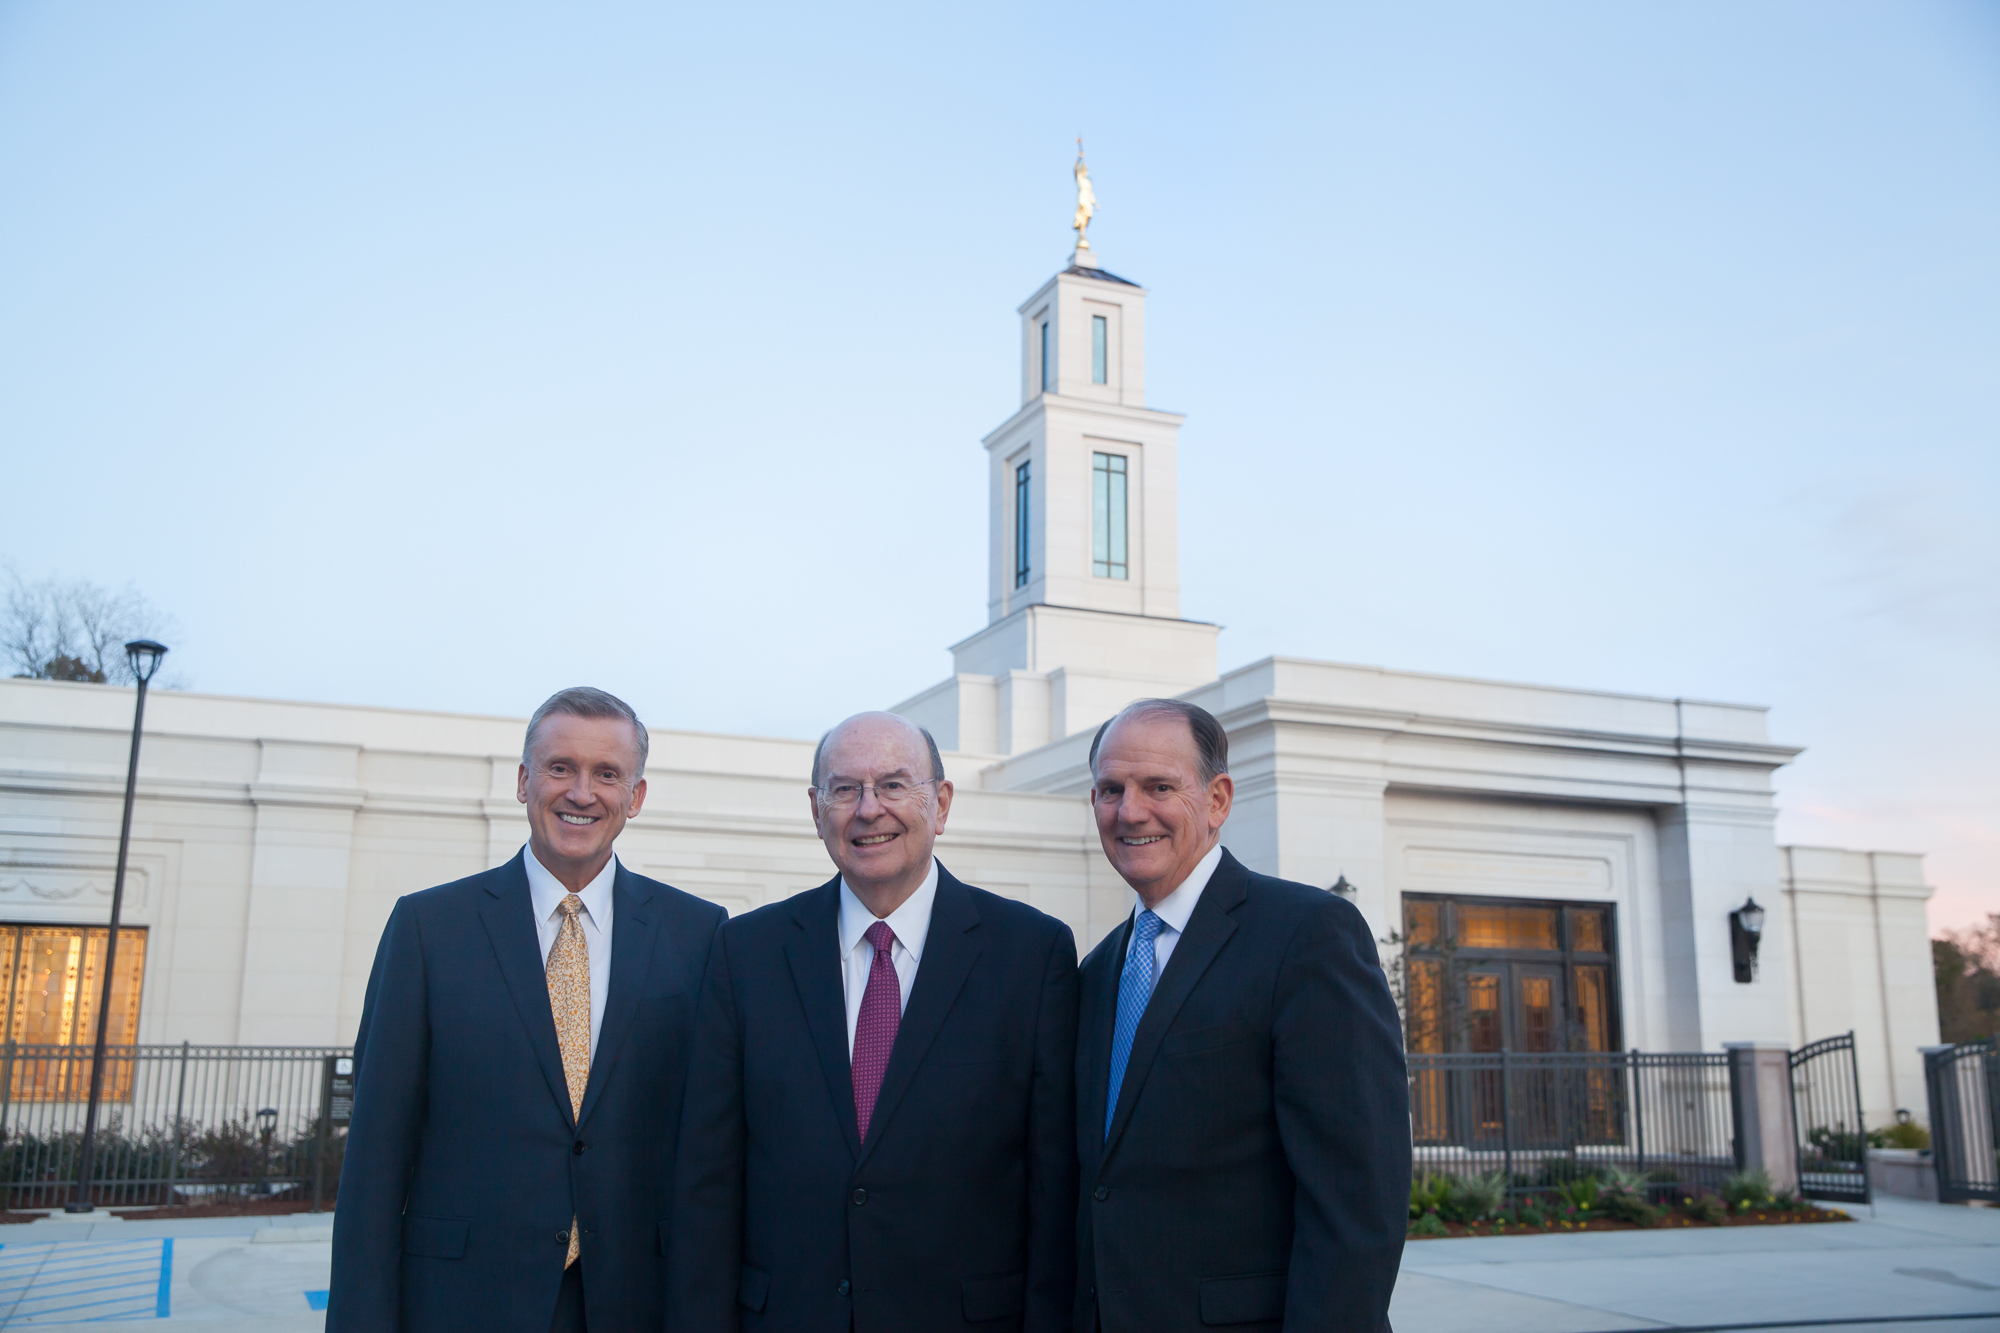 Elder Quentin L. Cook of the Quorum of the Twelve Apostles, center, stands in front of the Baton Rouge Louisiana Temple with Elder Kevin R. Duncan, General Authority Seventy and executive director of the Church's Temple Department, left, and Elder James B. Martino, General Authority Seventy and president of the North America Southeast Area, right, on Saturday, Nov. 16, 2019.